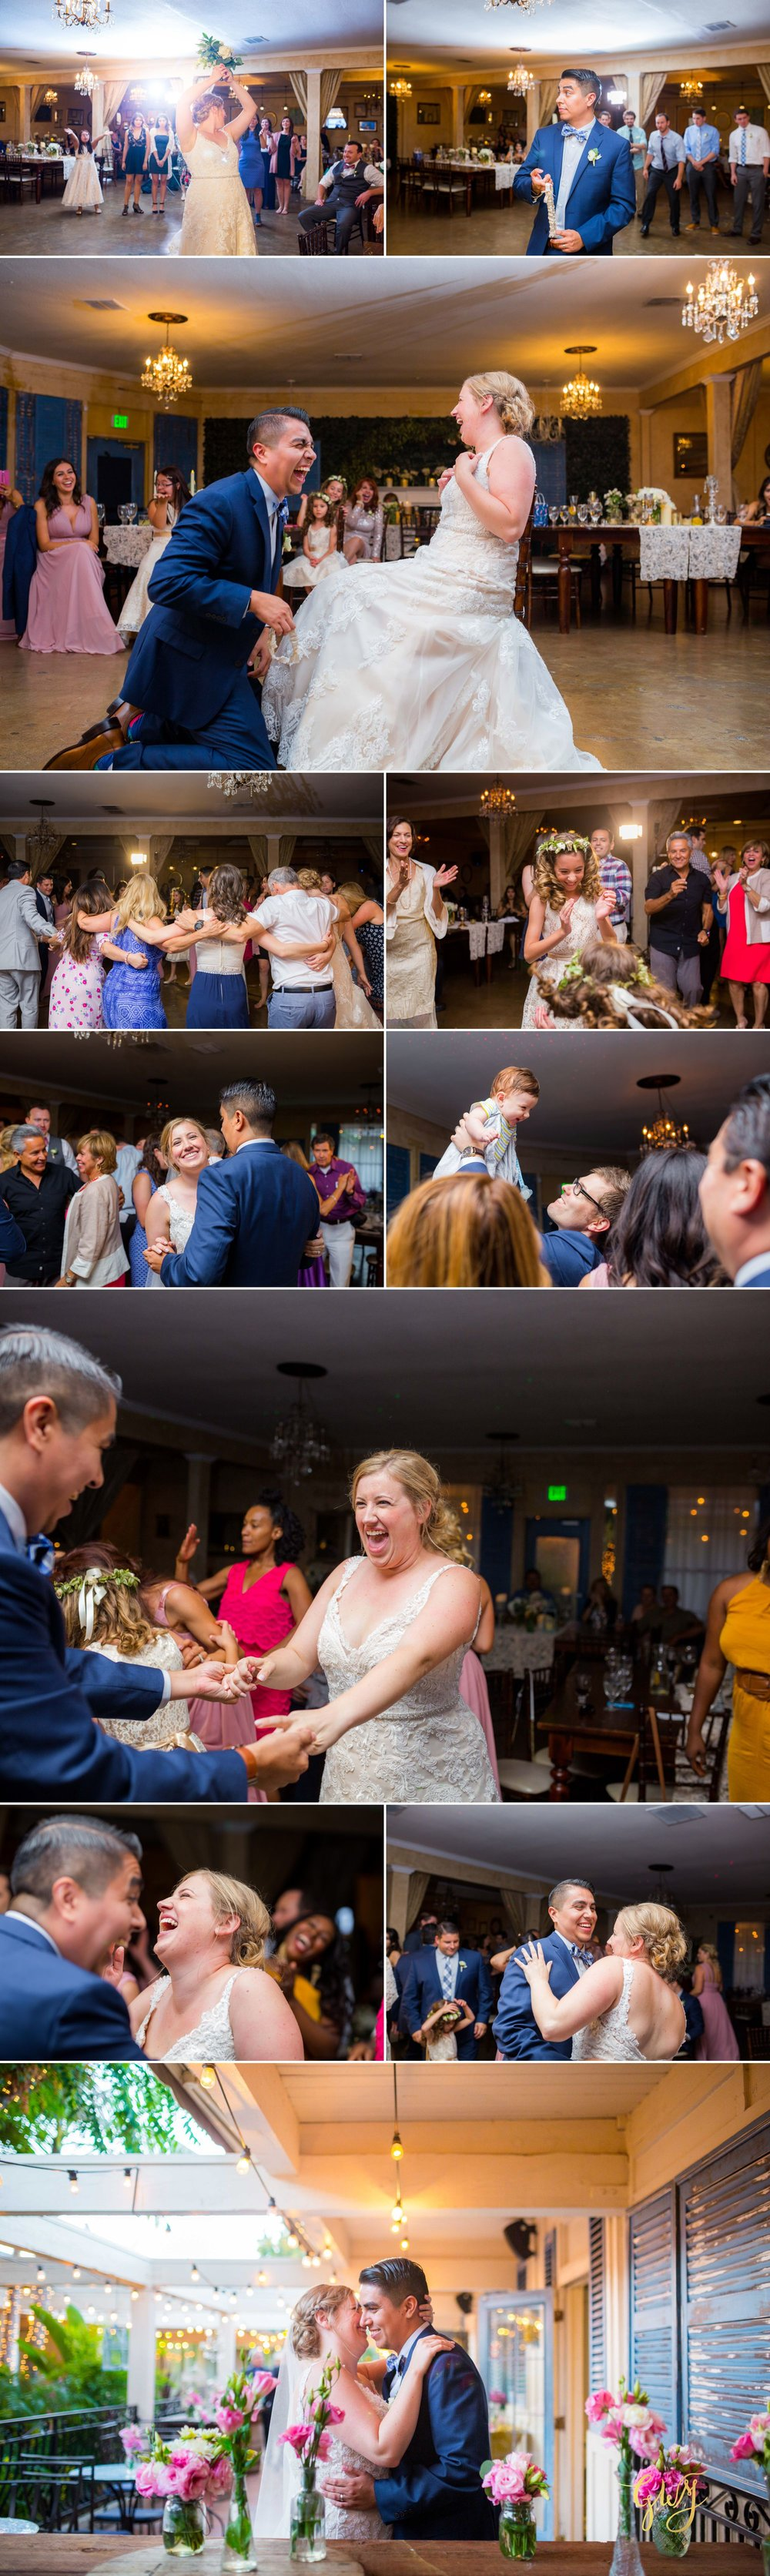 Javier + Kari Avenue of the Arts First Look Vintage Rose Wedding Ceremony Reception by Glass Woods Media 26.jpg